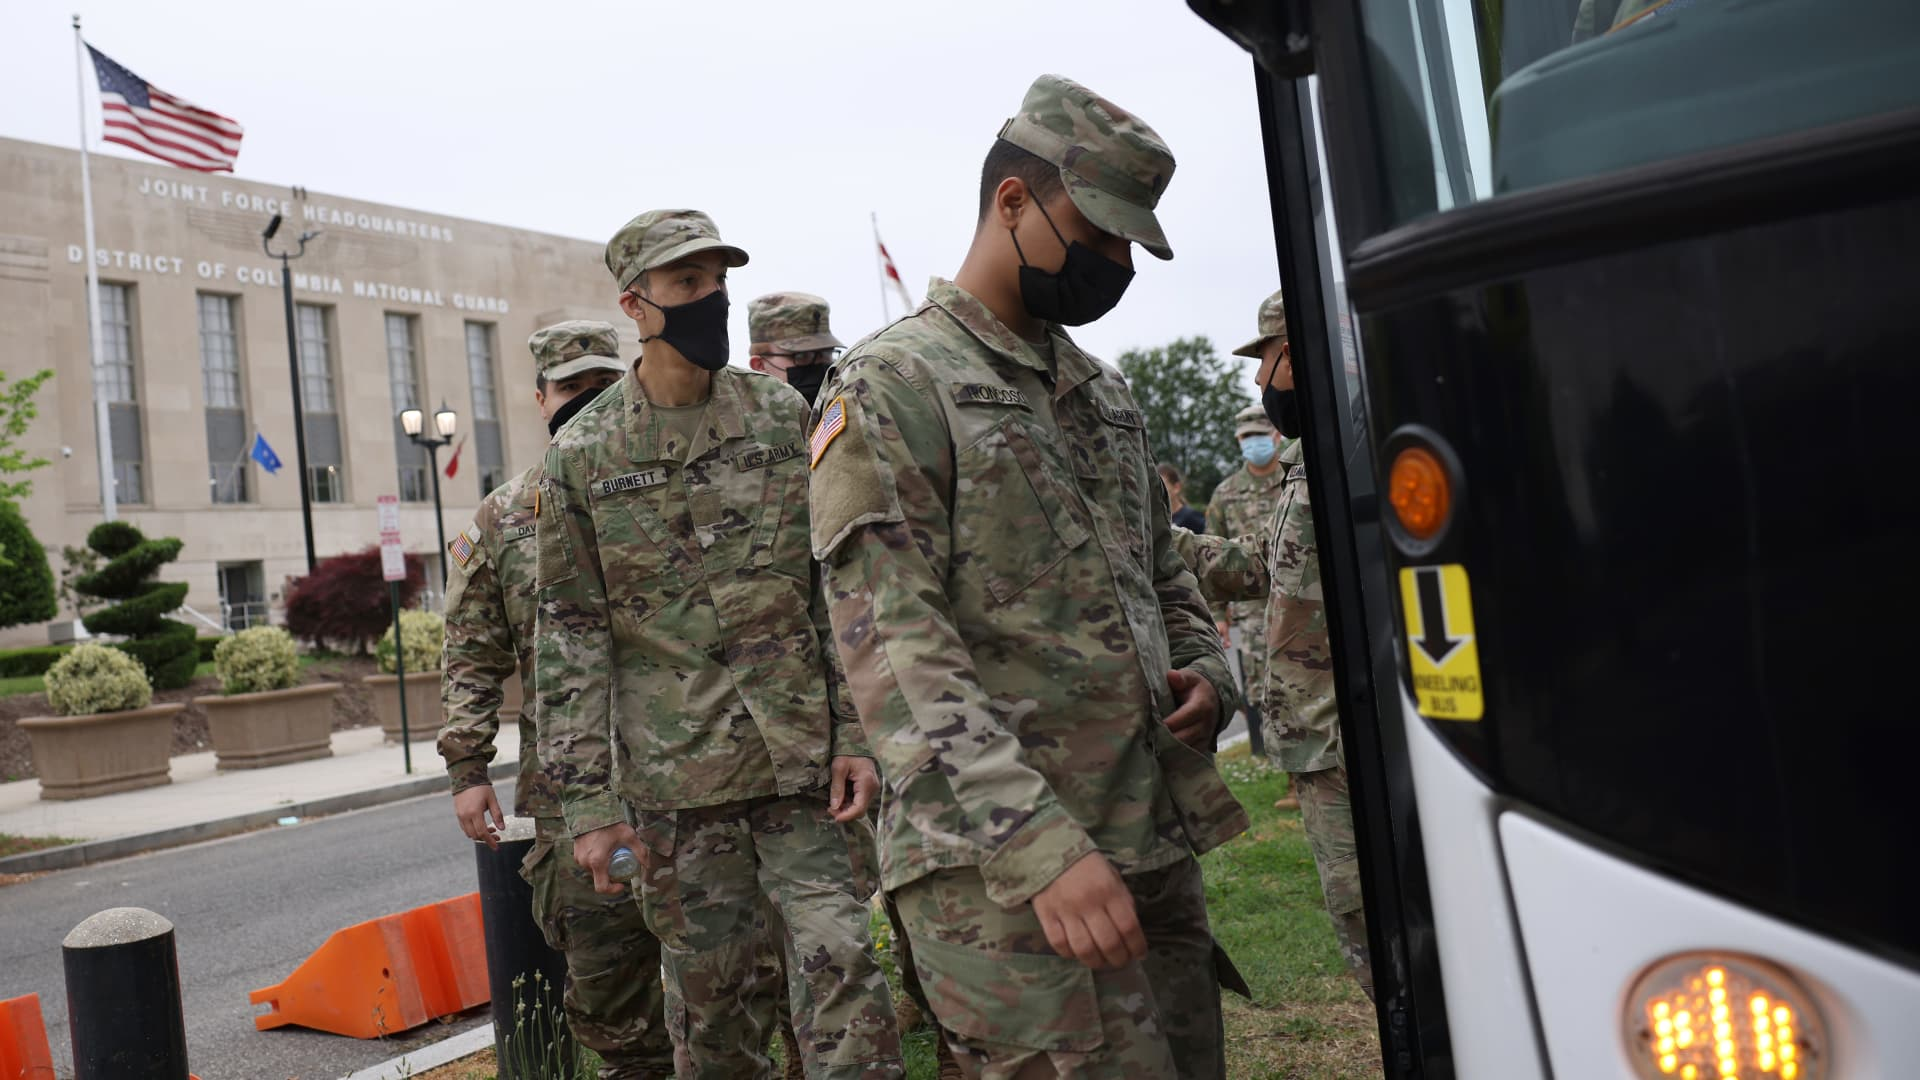 National Guard troops board buses as they leave the Armory after ending their mission of providing security to the U.S. Capitol on May 24, 2021 in Washington, DC.